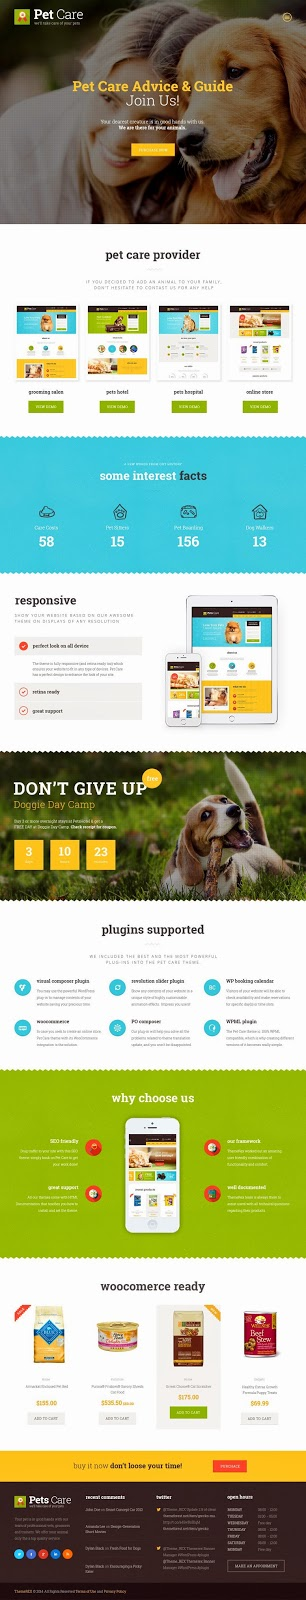 Responsive Pet Care Website Template